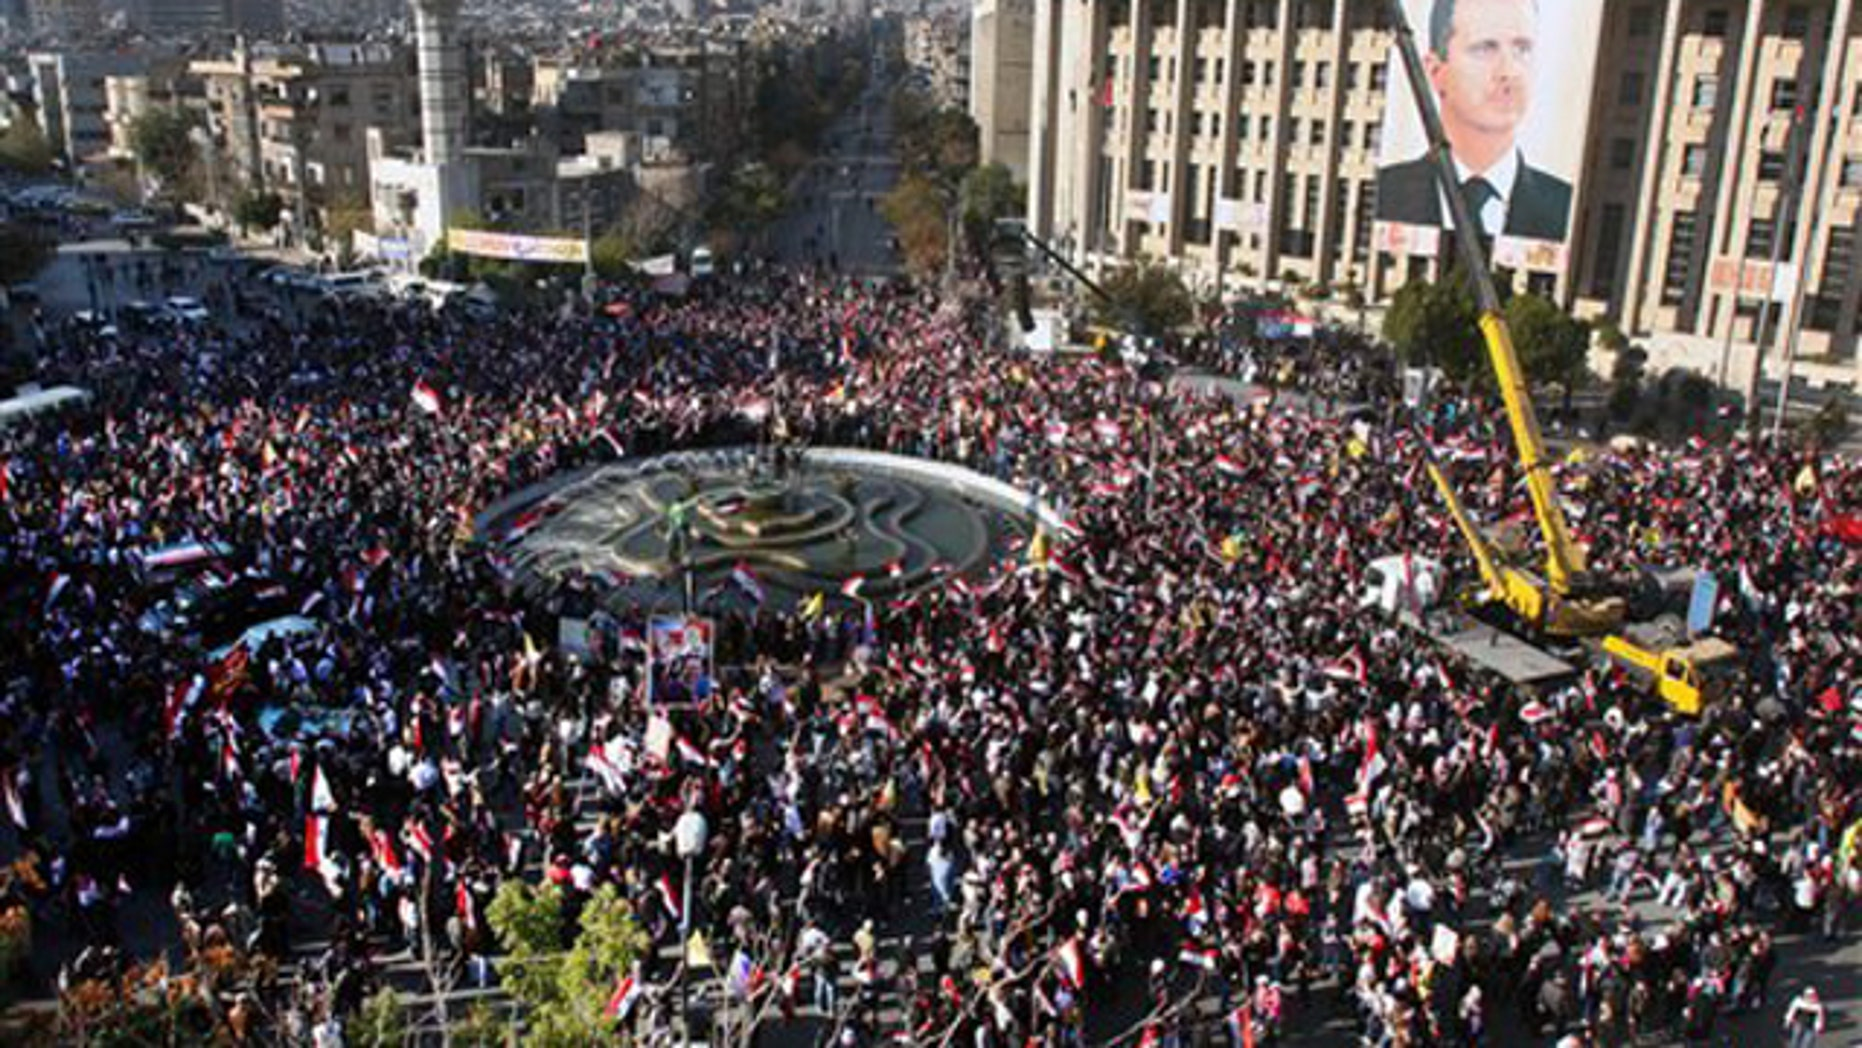 Pro-Syrian regime protesters gather during a protest against sanctions, in Damascus, Syria, on Friday Dec. 2, 2011.